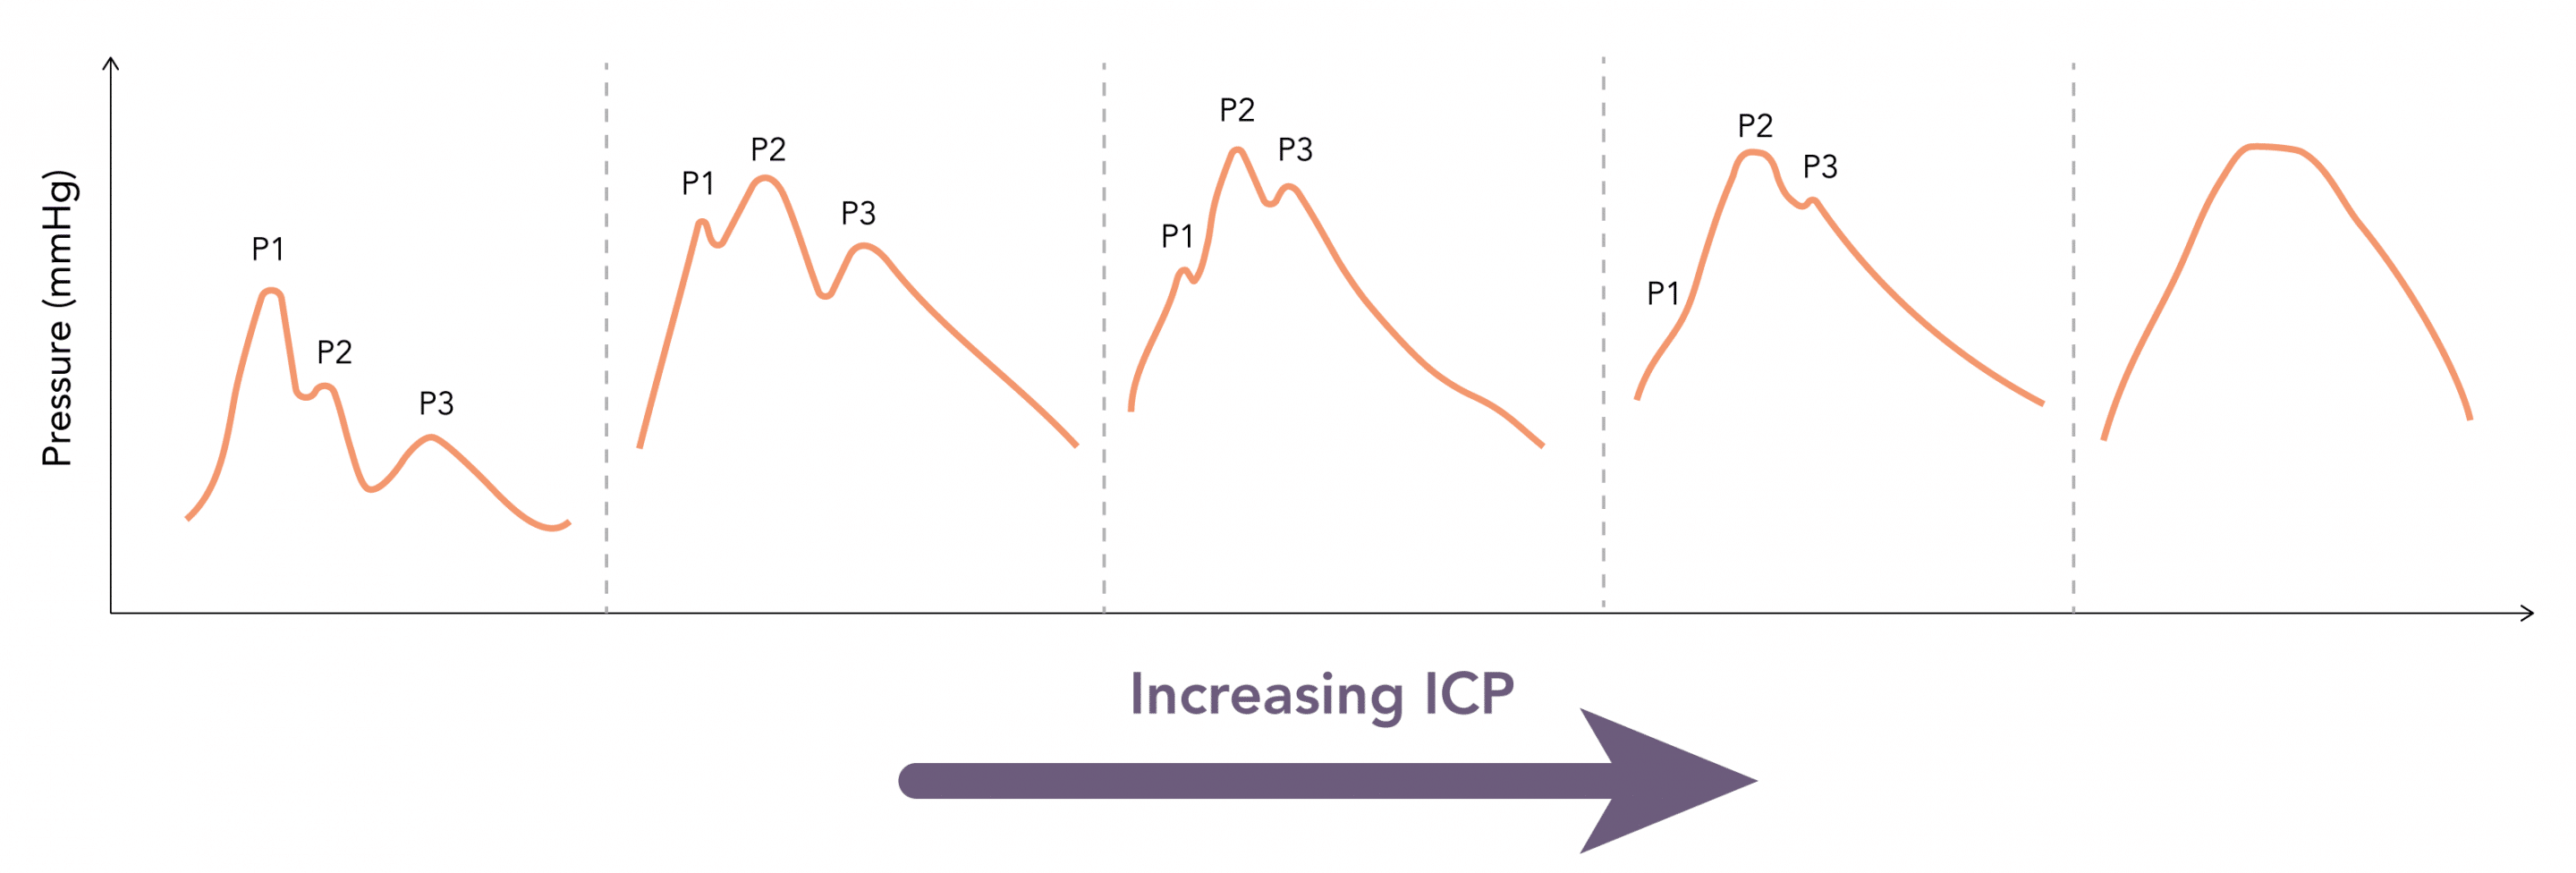 Changes in the morphologu of the ICP waveform with rising ICP